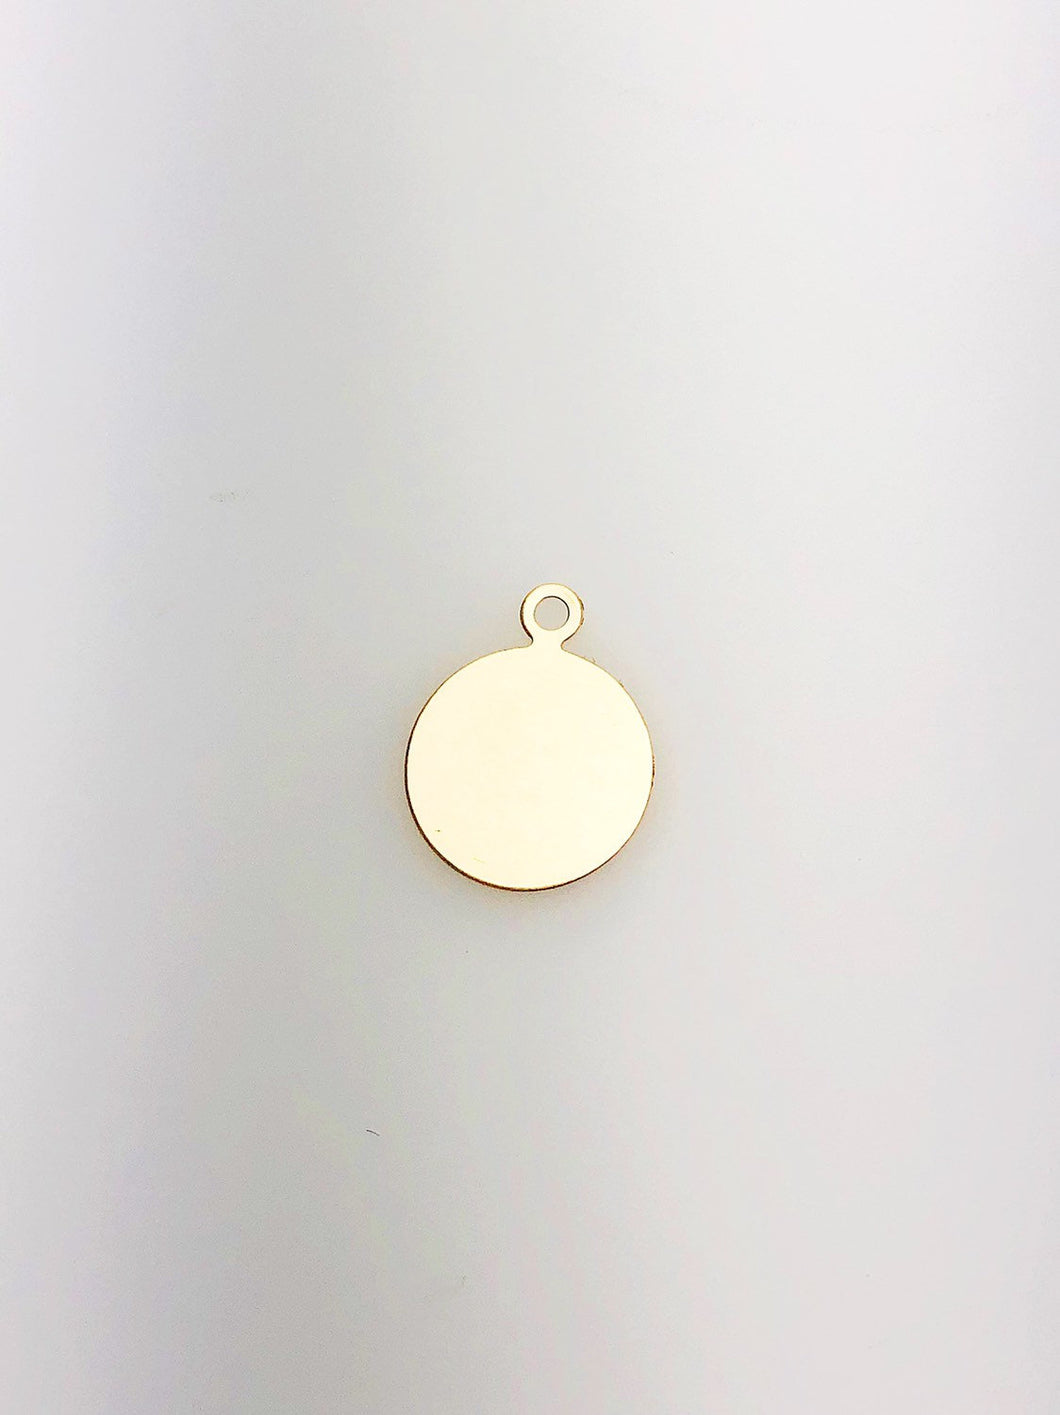 14K Gold Fill Circle Tag Charm w/ Ring, 12.7mm, Made in USA - 823